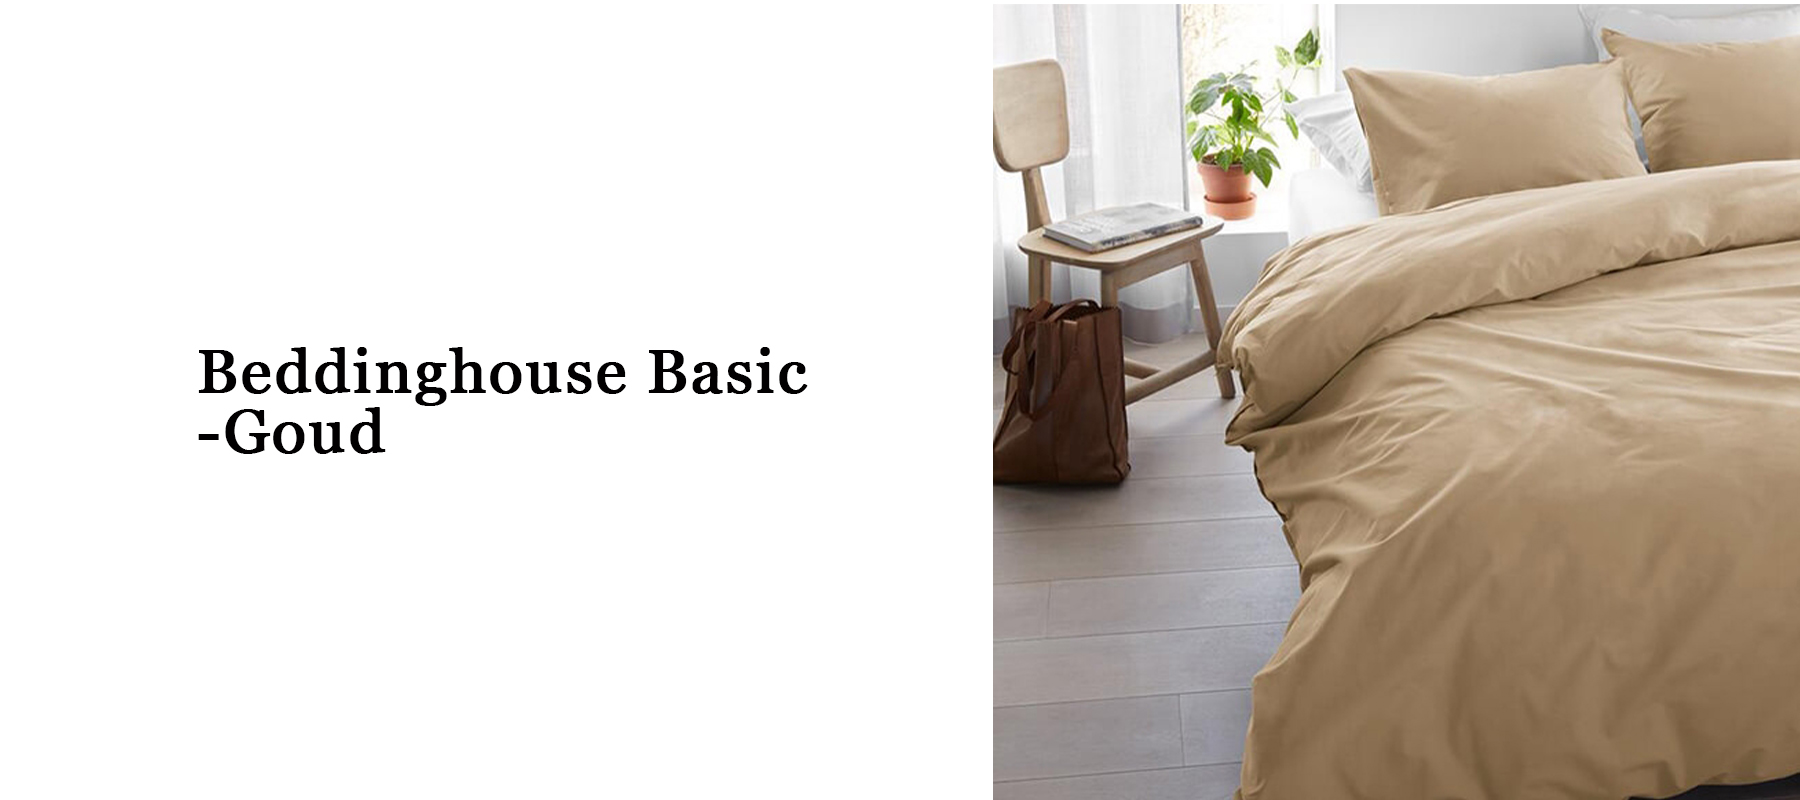 Beddinghouse Basic - Goud